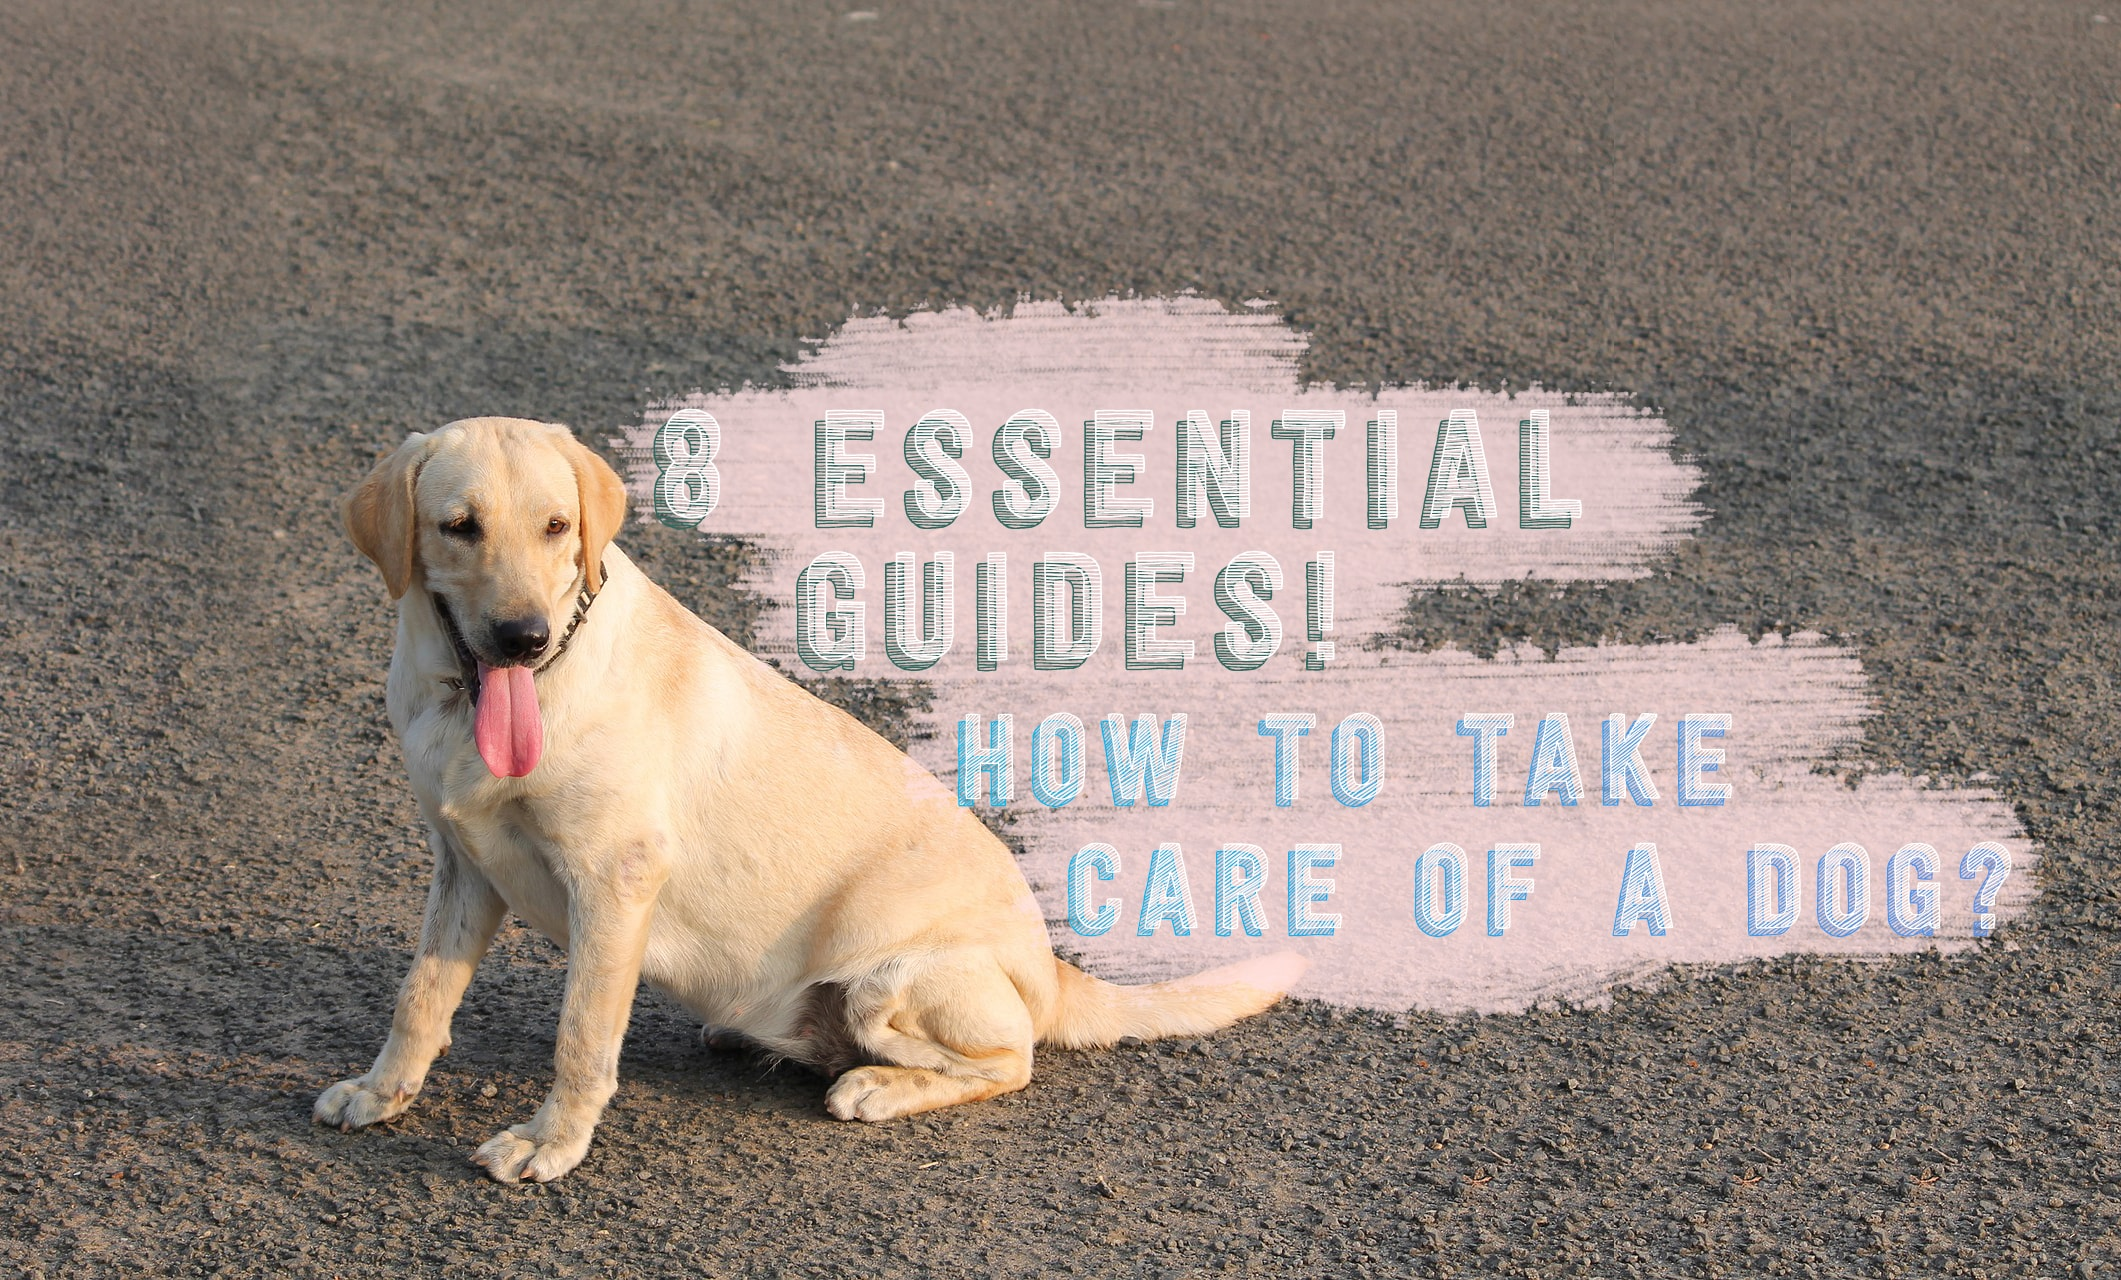 Know How to take care of a dog with these Eight Essentials